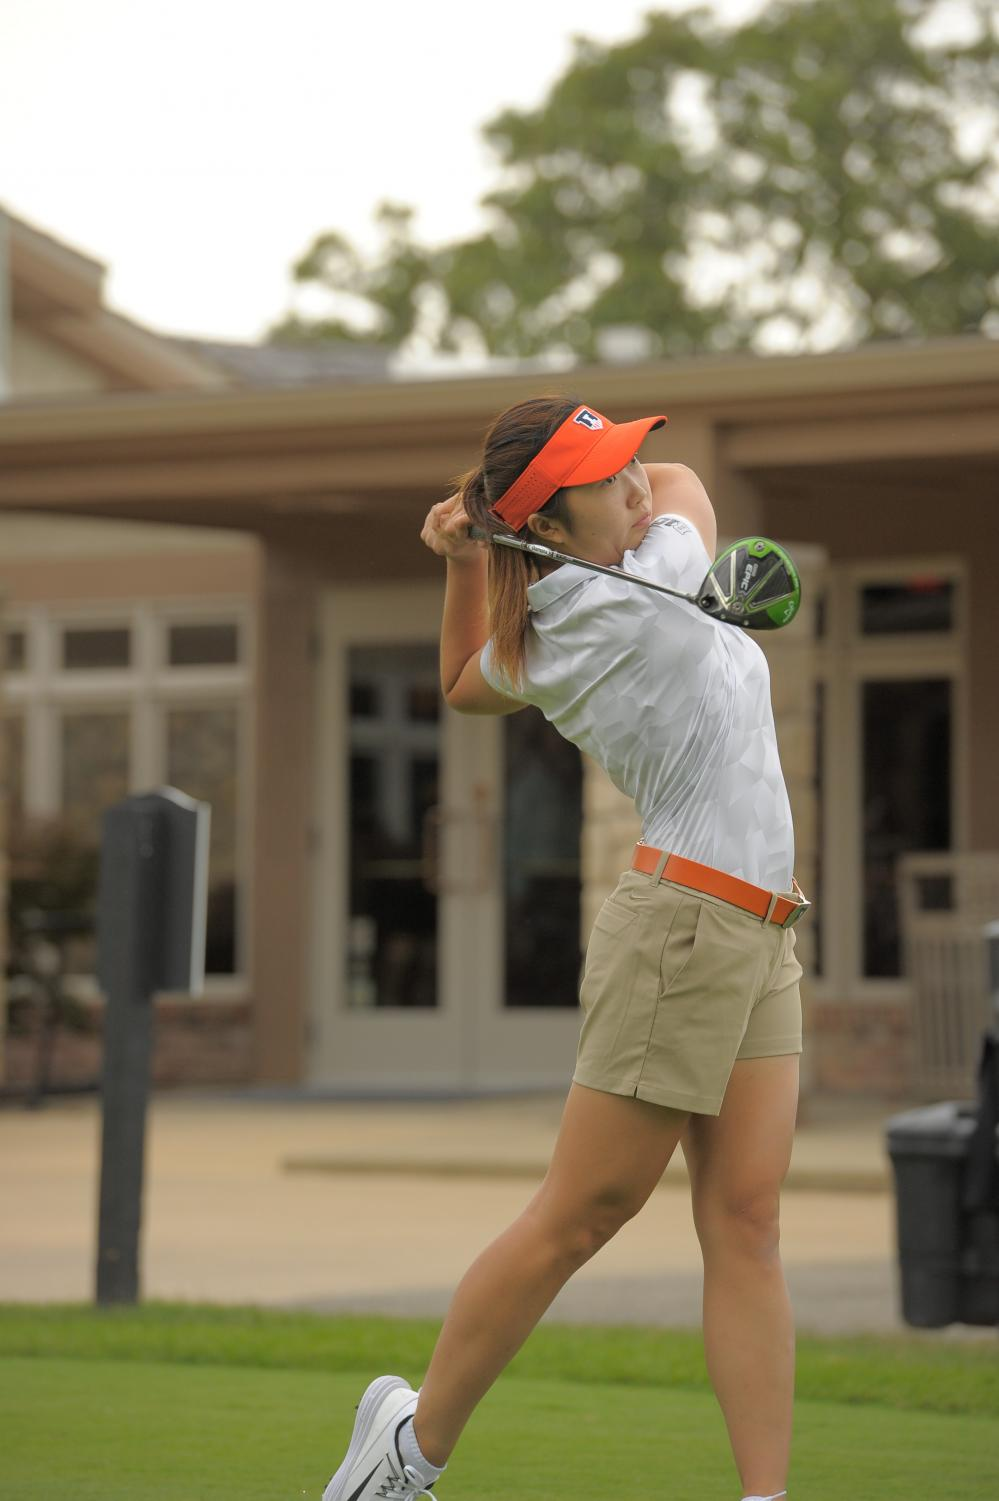 Illinois senior Grace Park takes a swing for the women's golf team. Illinois participated in a tournament at Briar's Creek where it placed ahead of Penn State. Park was a major factor in the team's performance.